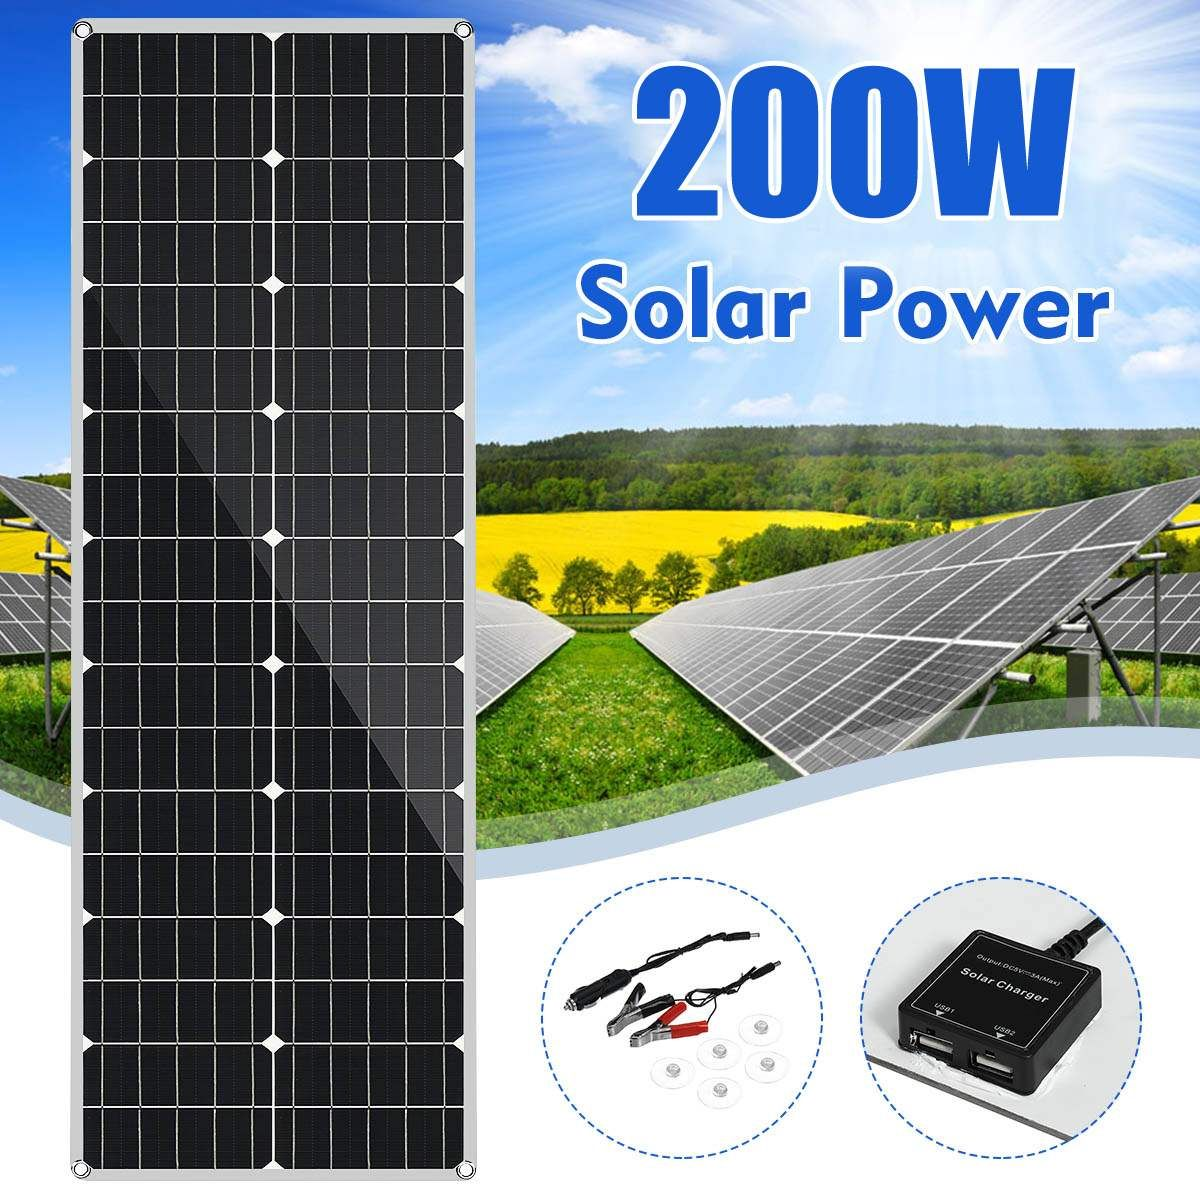 Leory 18v Solar Panel 200w Flexible Monocrystalline Silicon Solar Panel For Outdoor Cycling Climbing Hiking Camping Solar Batter Di 2020